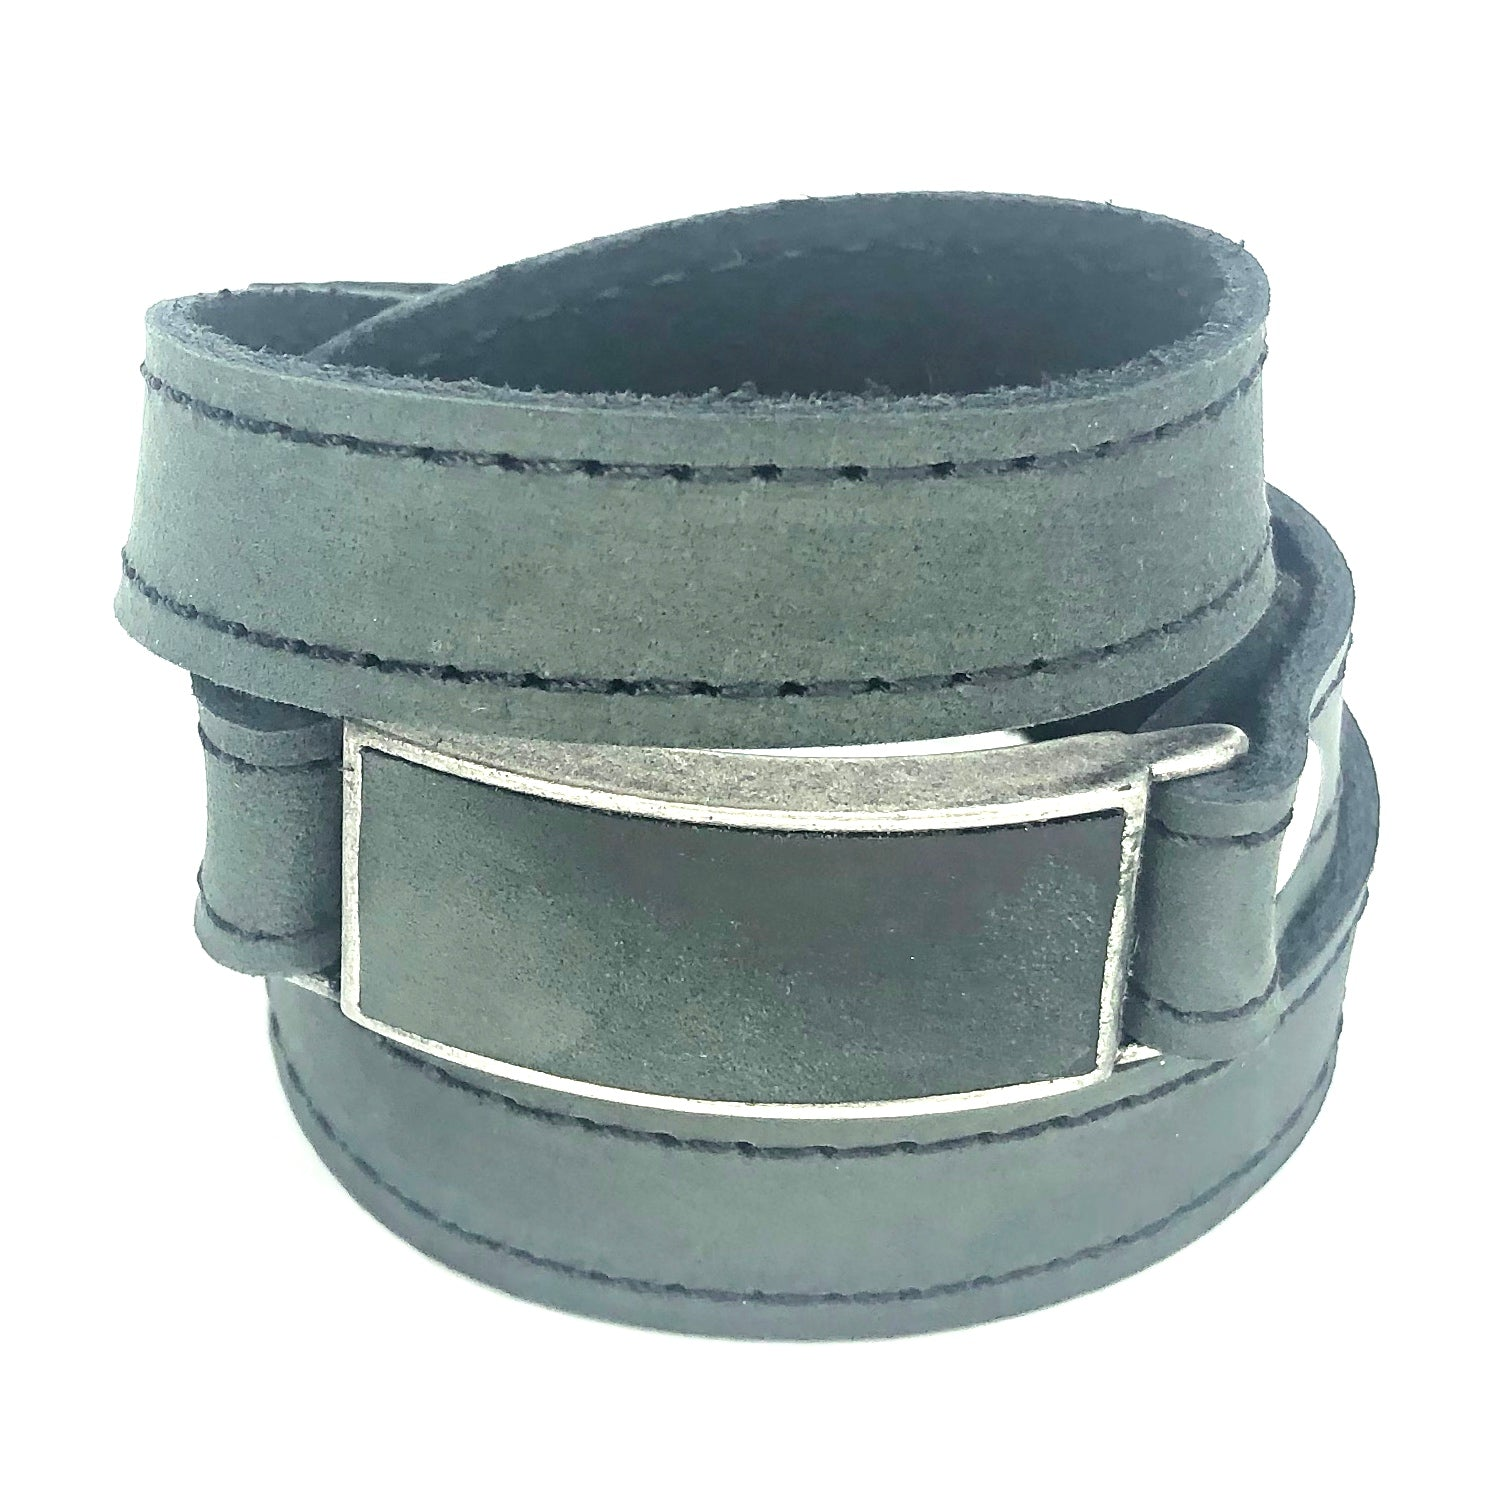 LEATHER WRAPAROUND WITH METAL LINK INLAID WITH MATCHING PIECE OF LEATHER by nyet jewelry